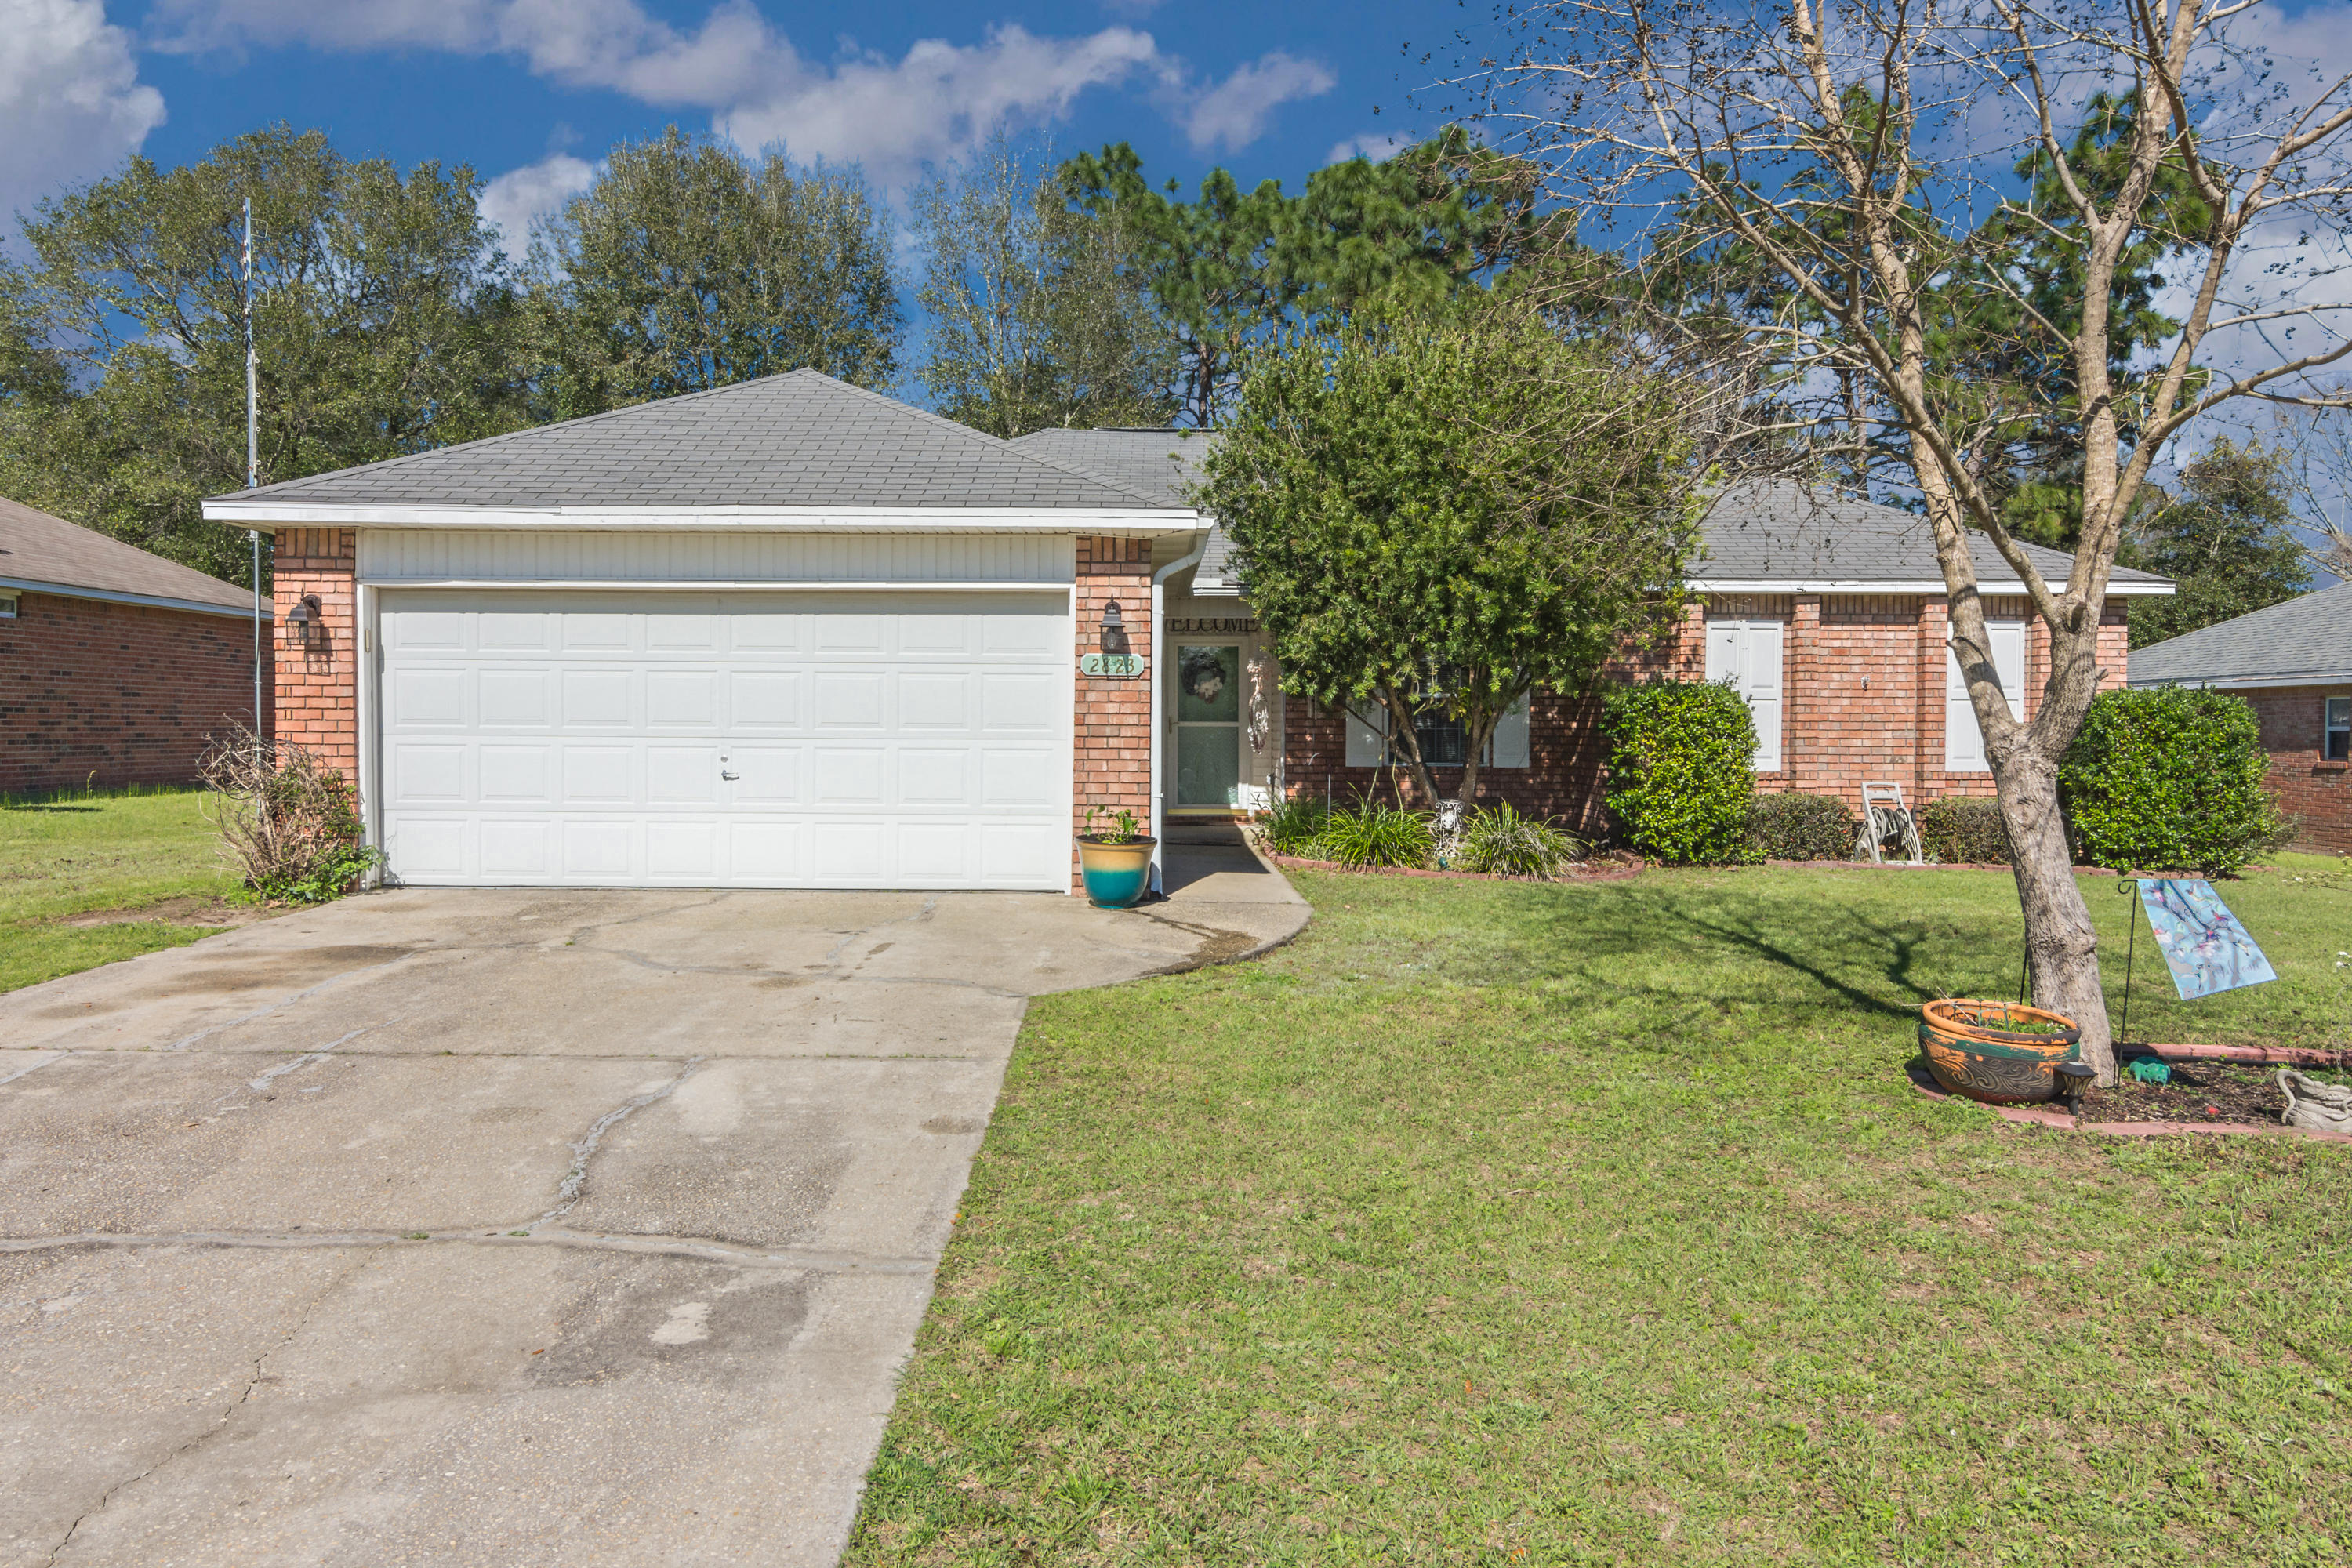 3 bed 2 bath home just one red light away from Eglin AFB and Duke Field.  This beautiful home is loc